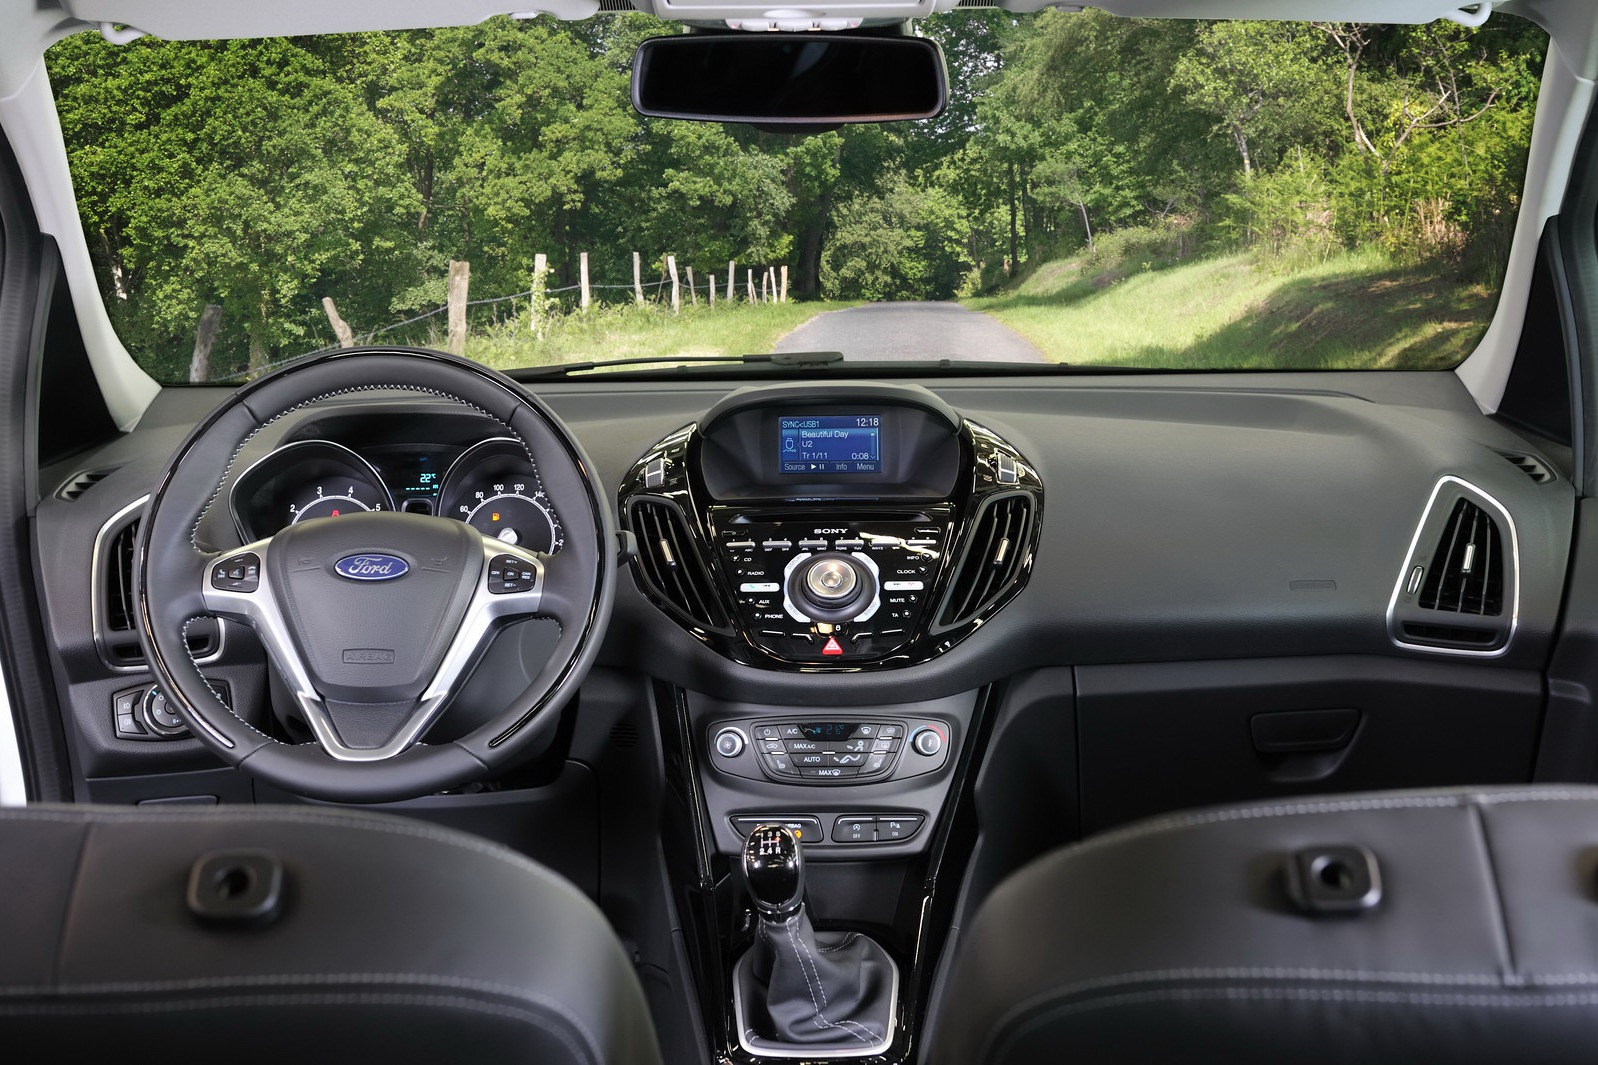 FORD B-Max - 2012, 2013, 2014, 2015 - autoevolution